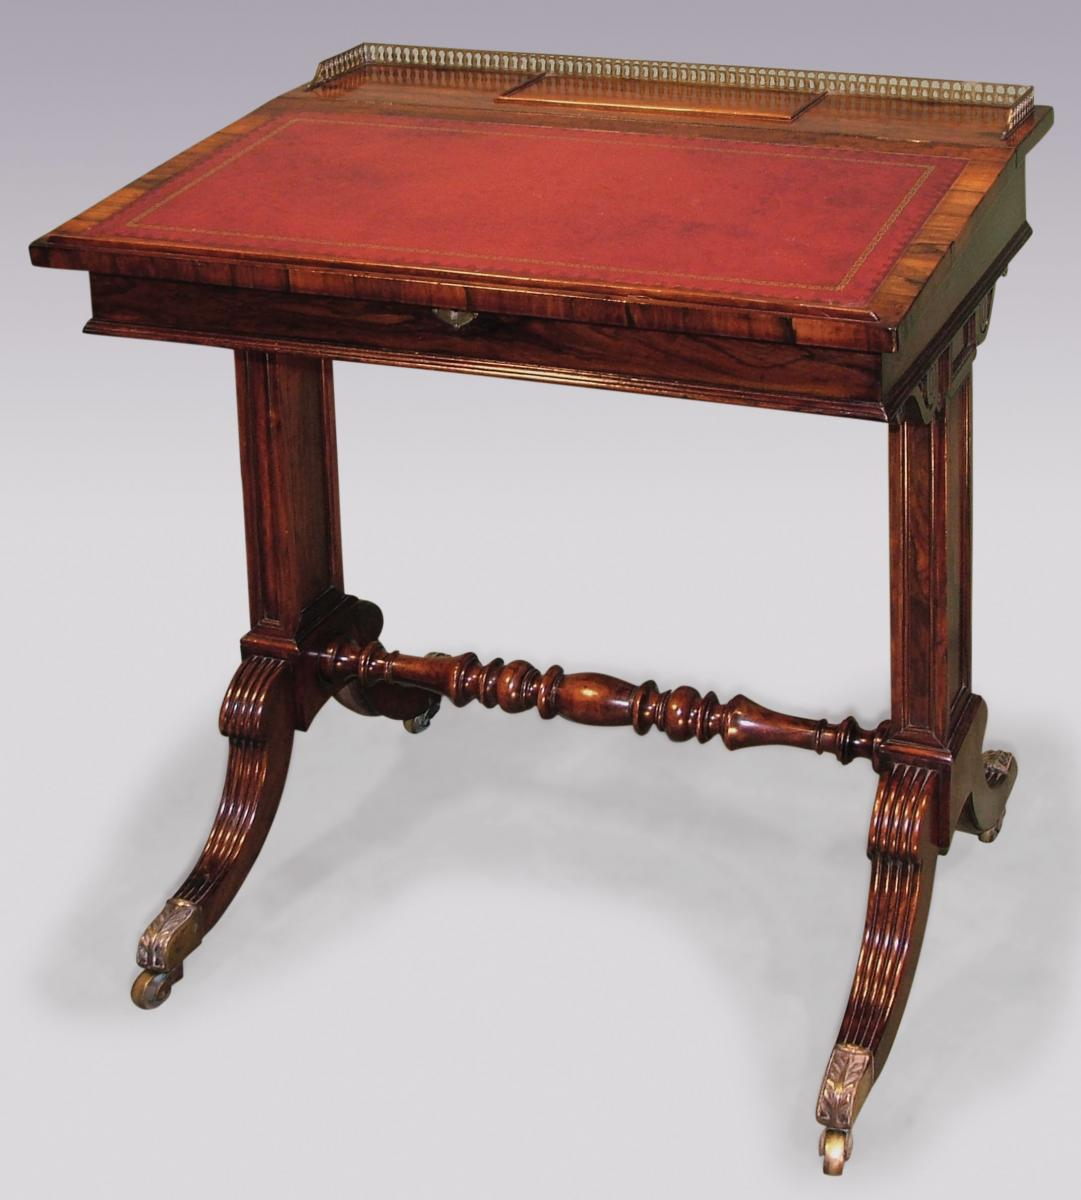 Antique Regency Period Rosewood Writing Desk of Small Proportions